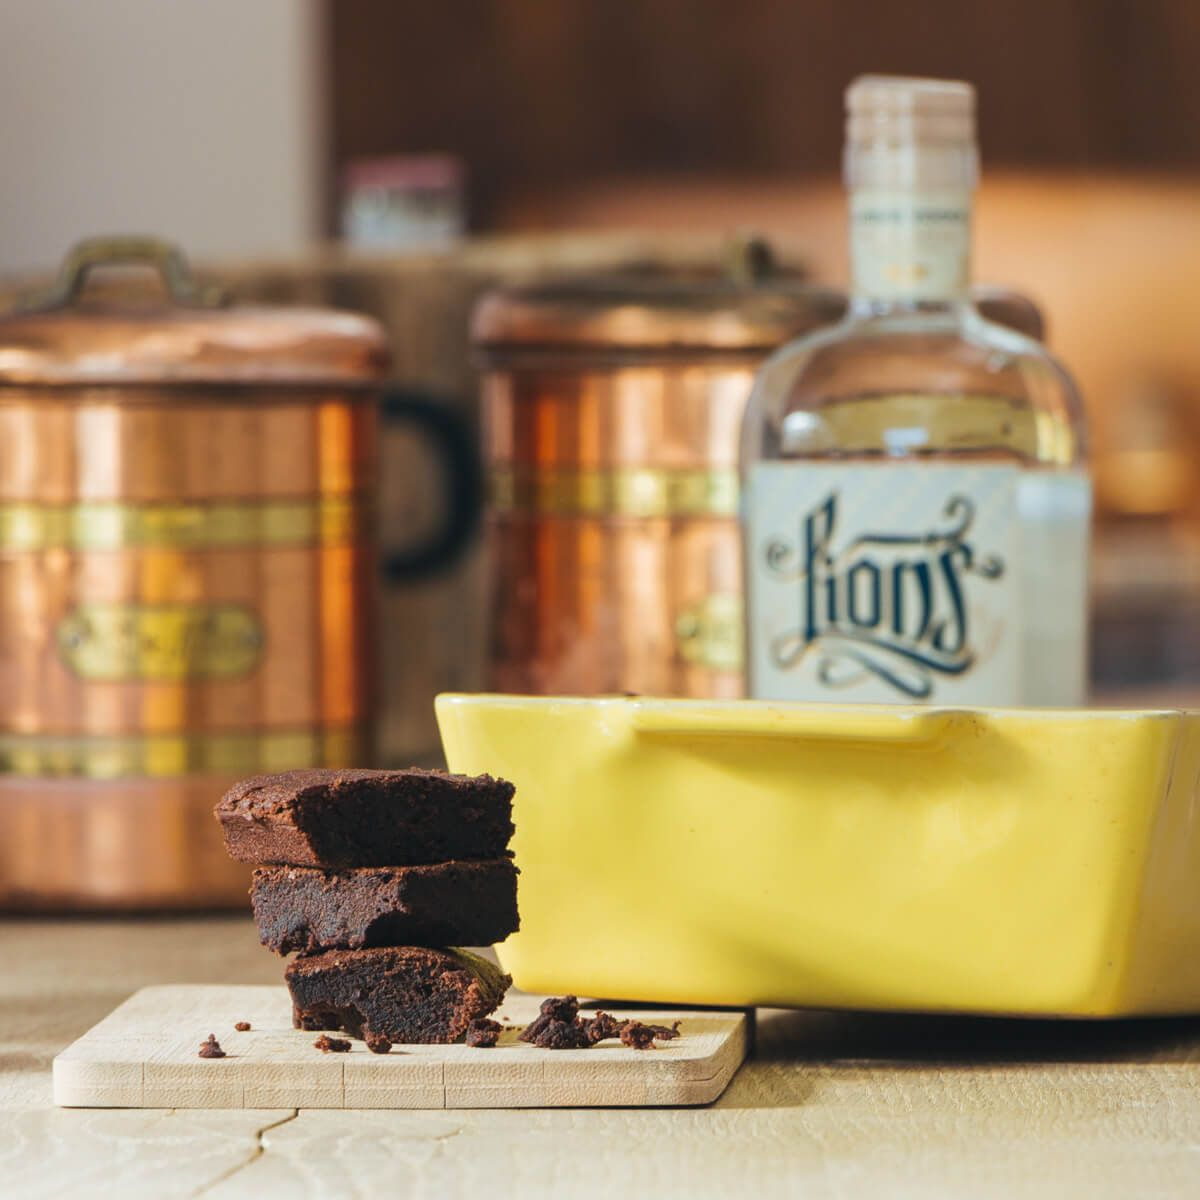 LION's Vodka Drunken Brownies